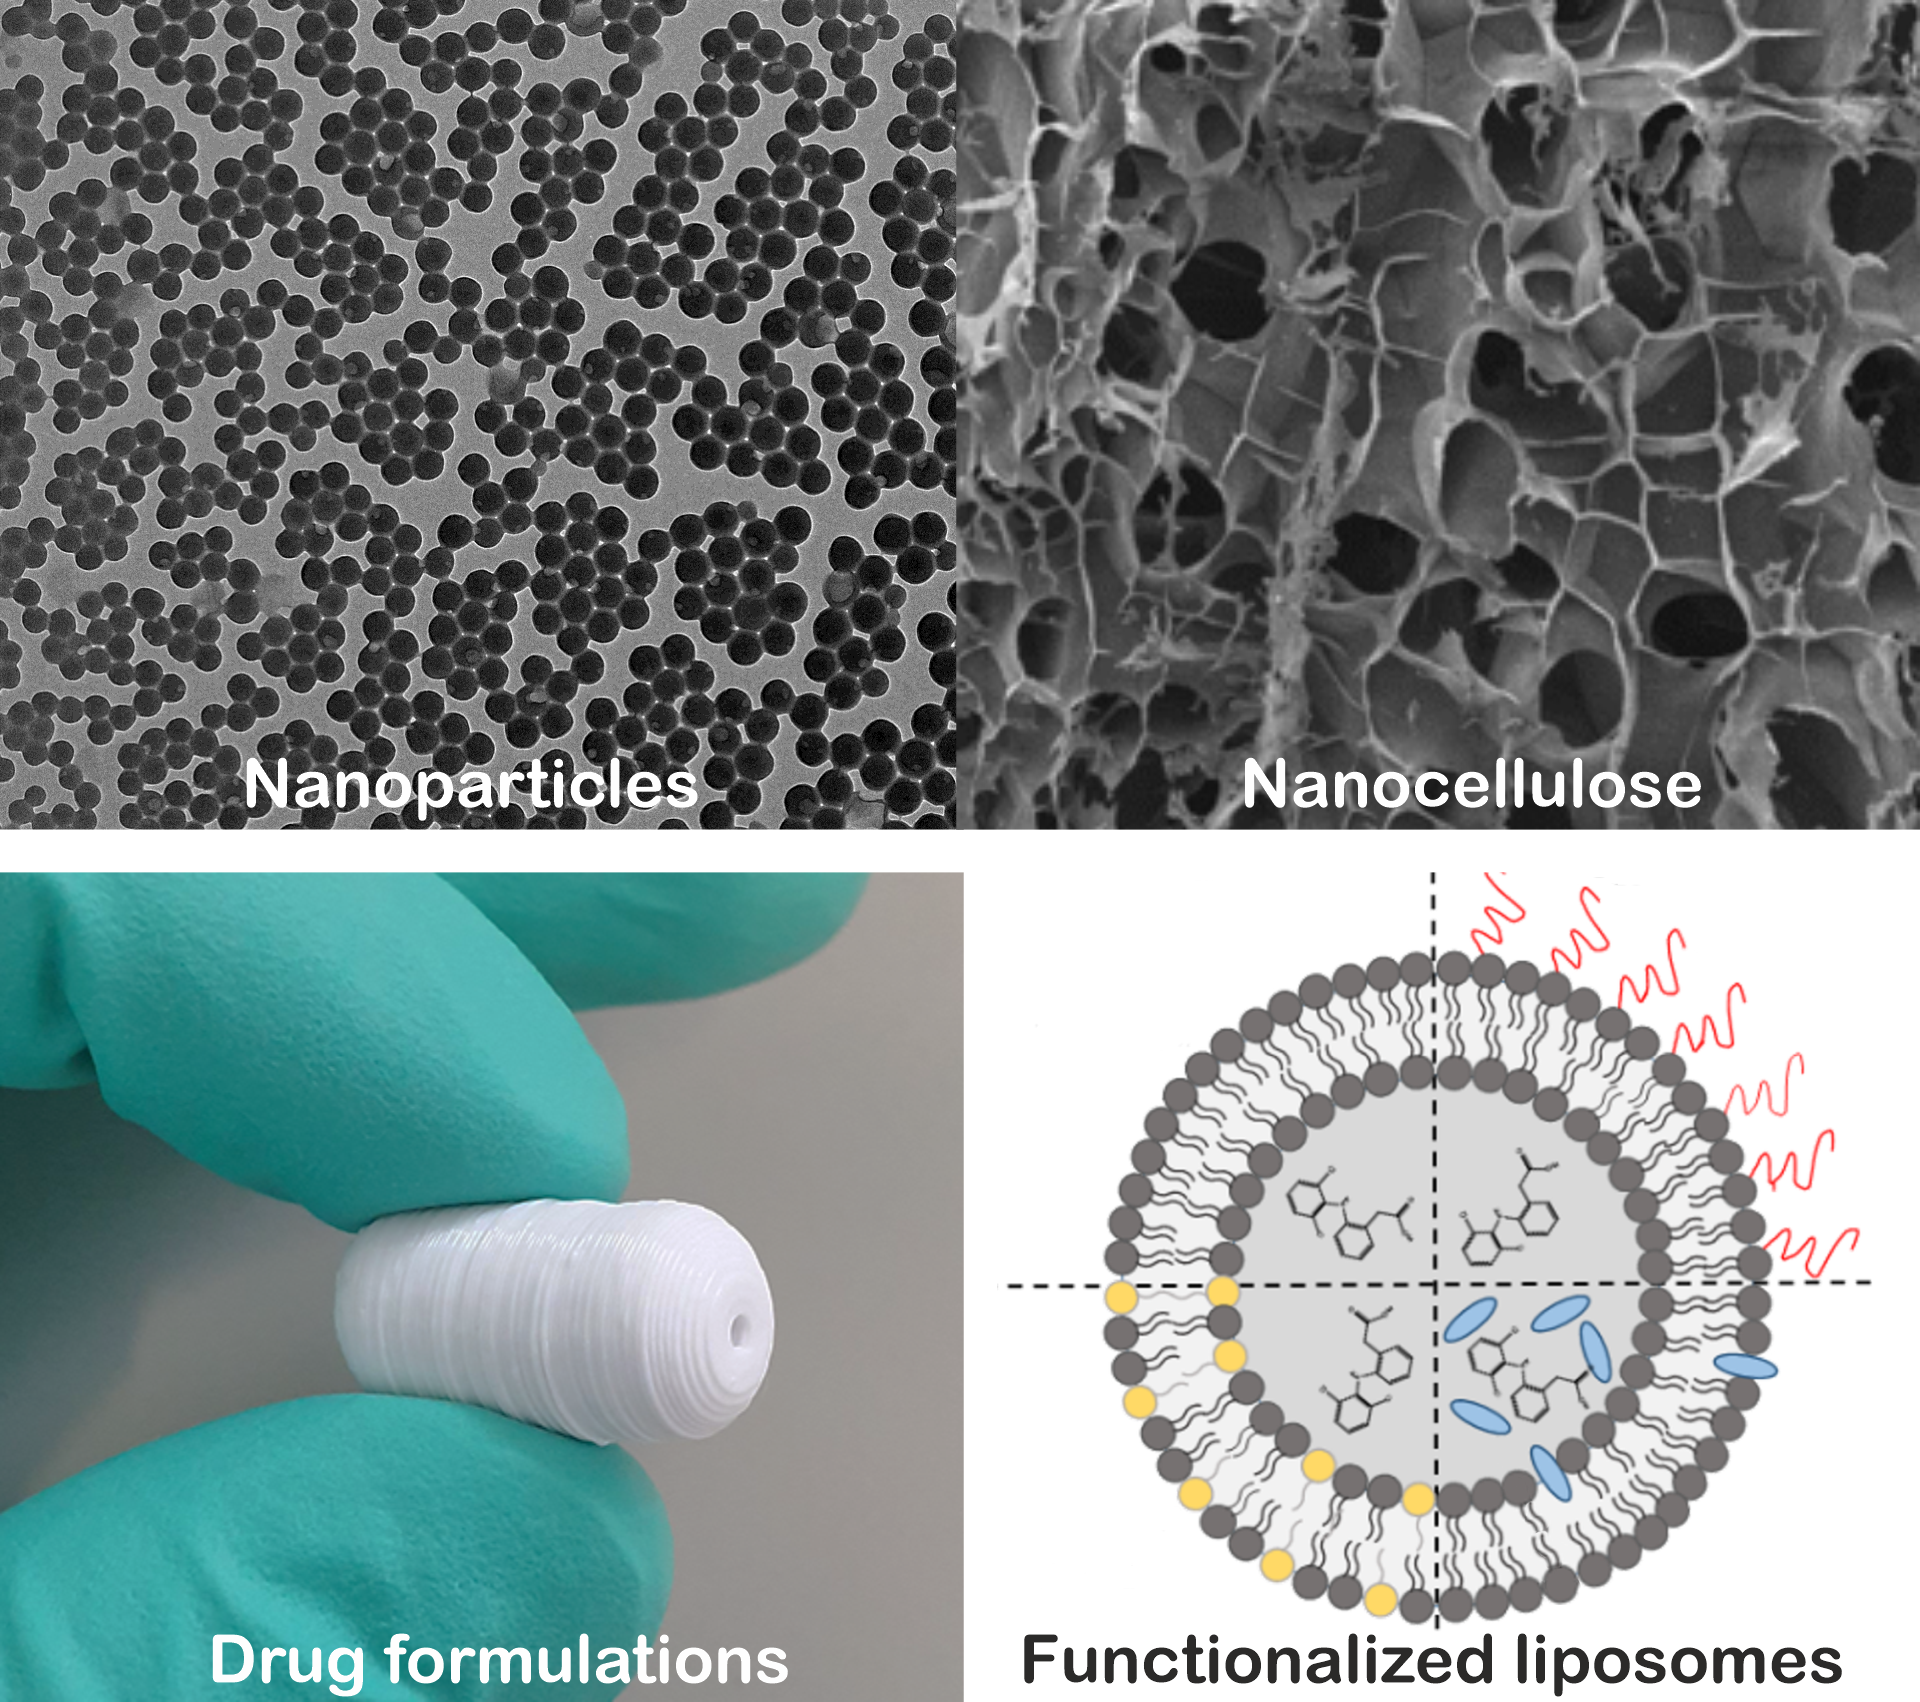 Materials studied include e.g. nanoparticles, liposomes, controlled release systems, and nanocellulose